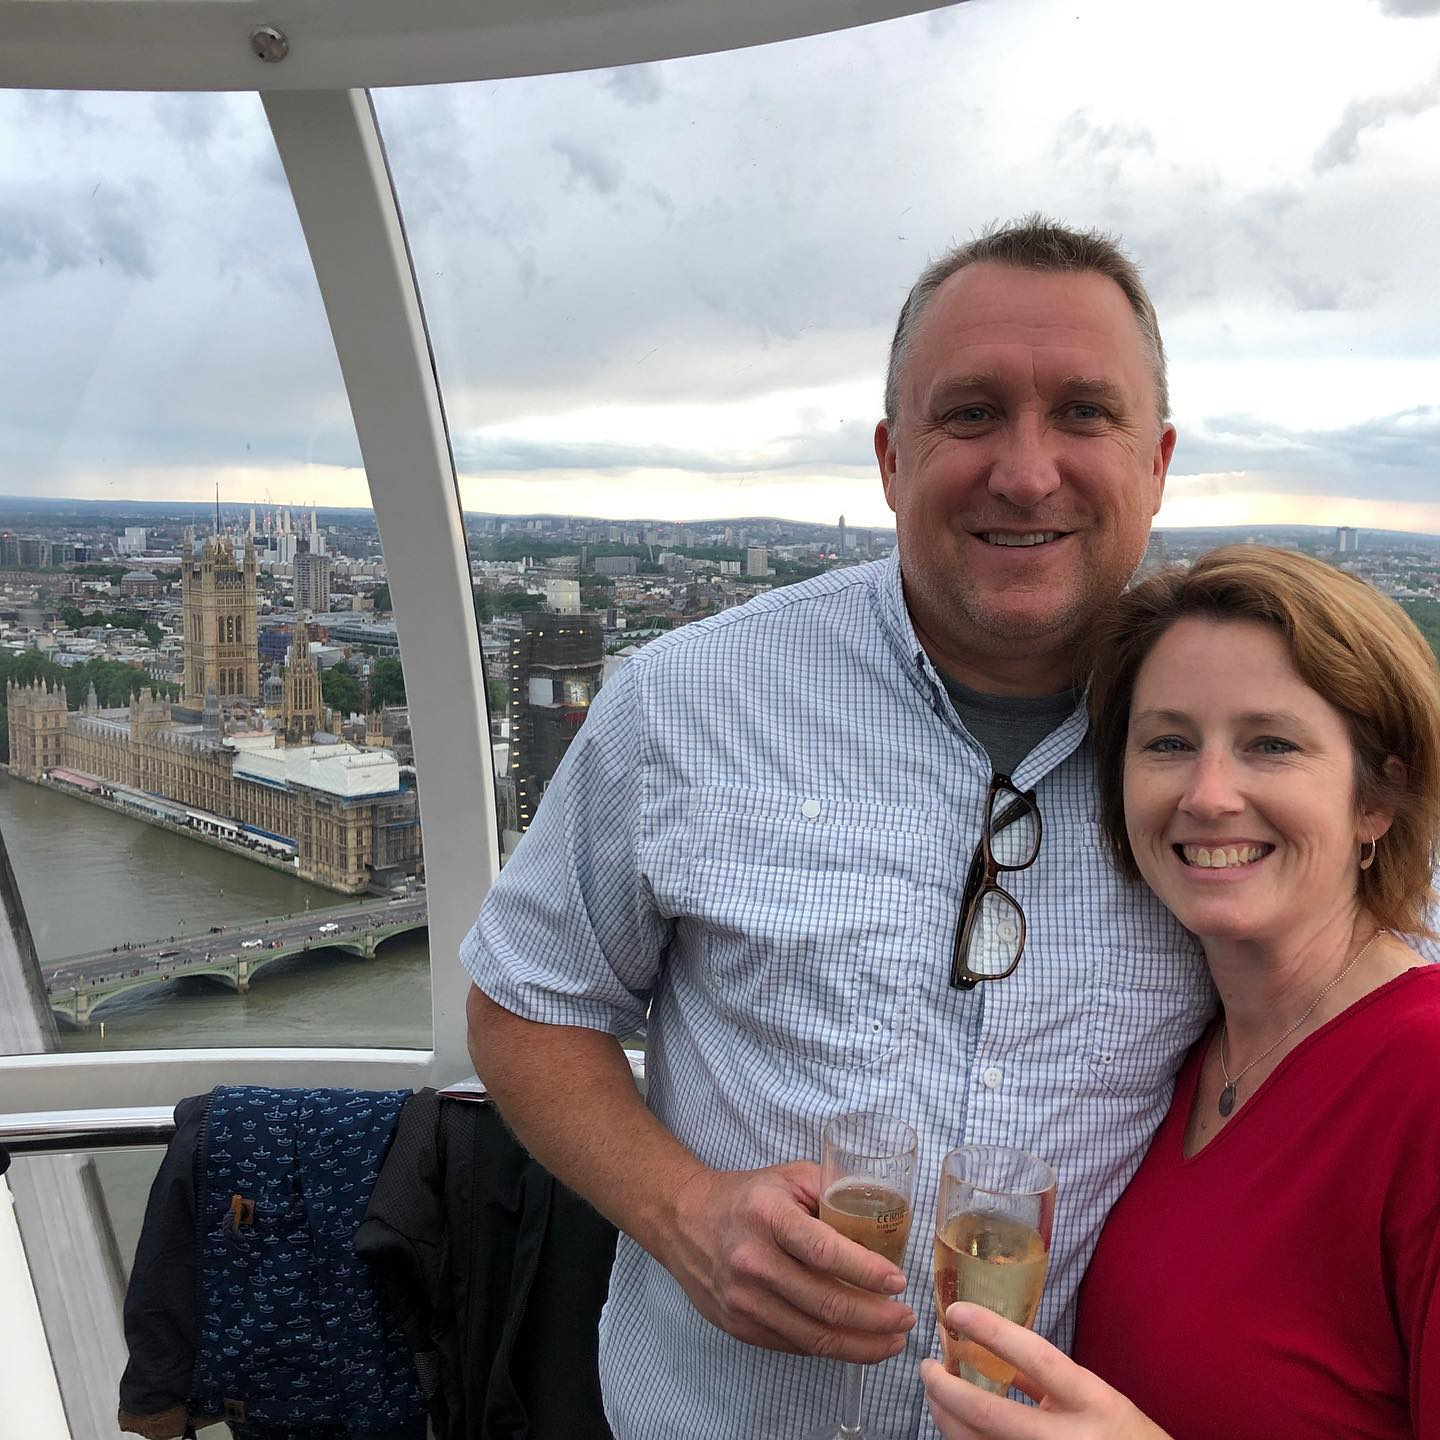 A toast on the London Eye